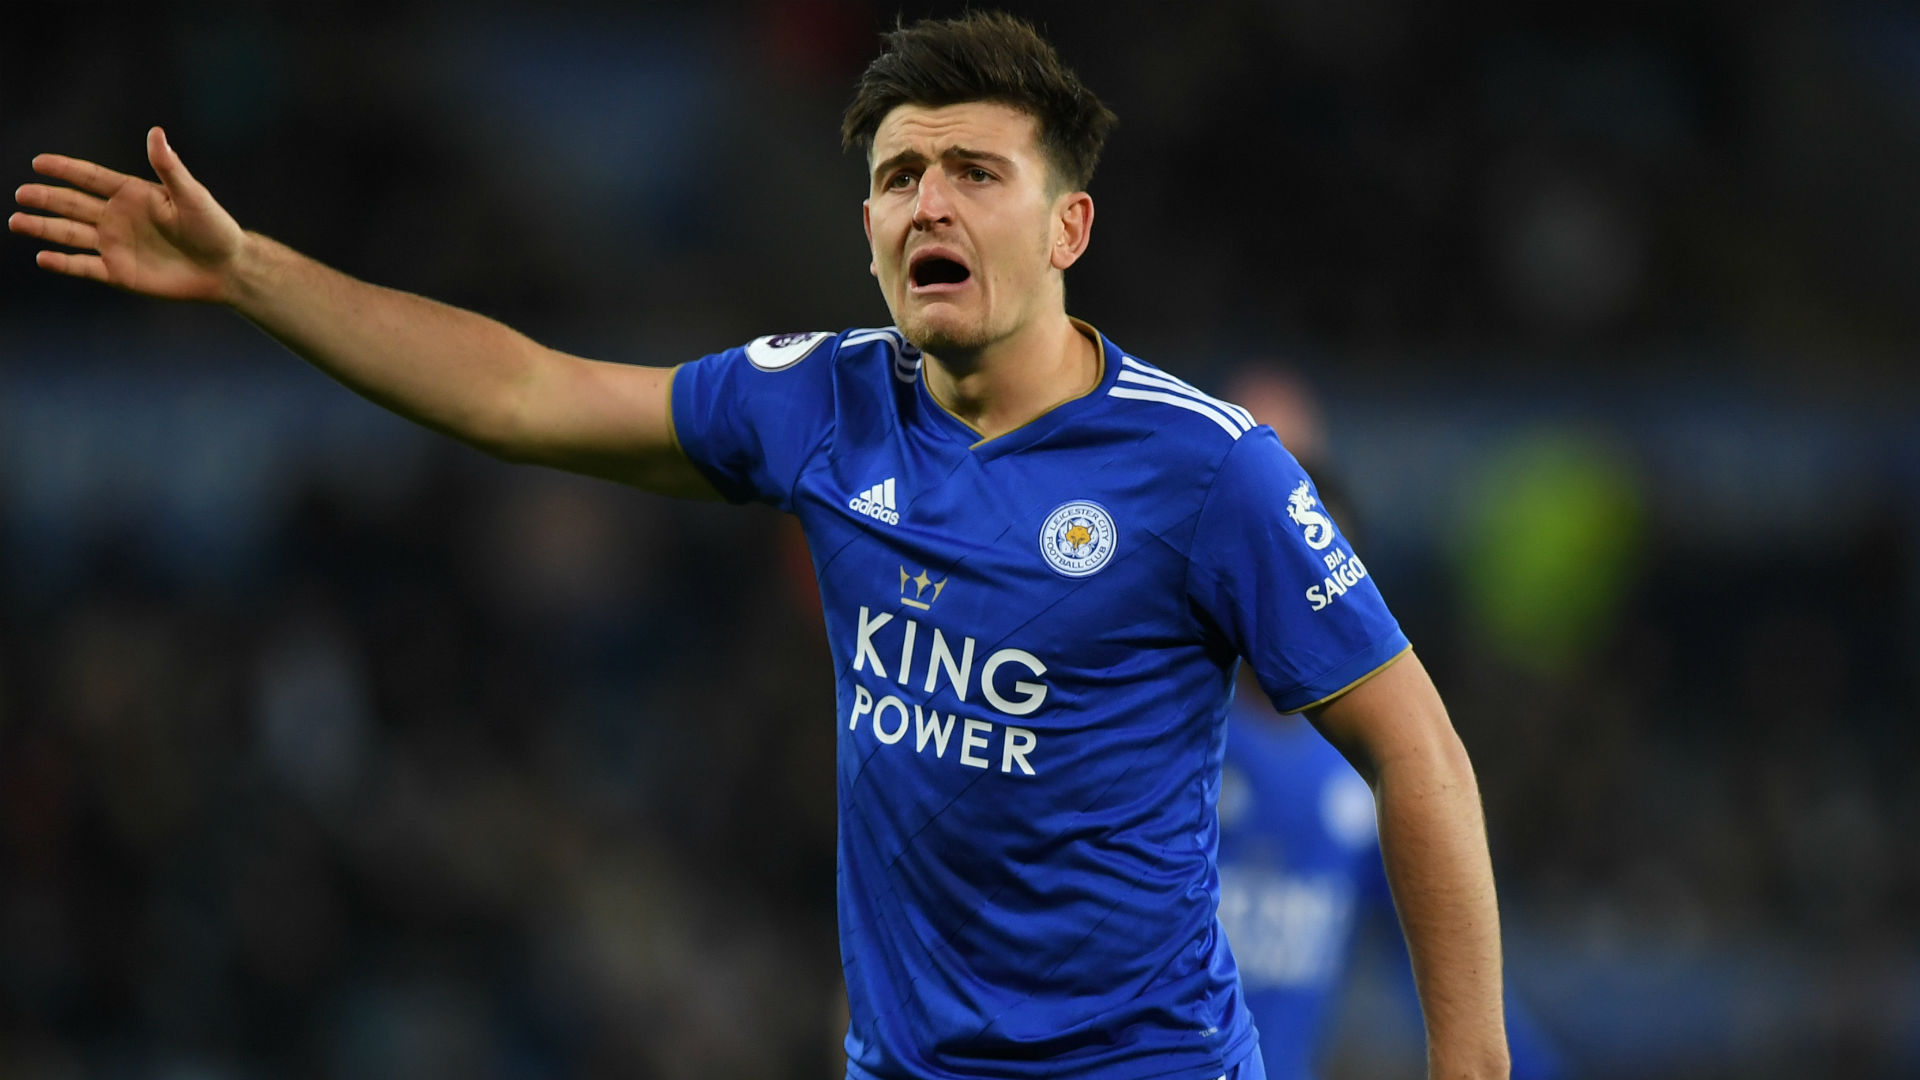 Despite being linked with Manchester United in the previous transfer window, Harry Maguire is not expected to be on the move in January.